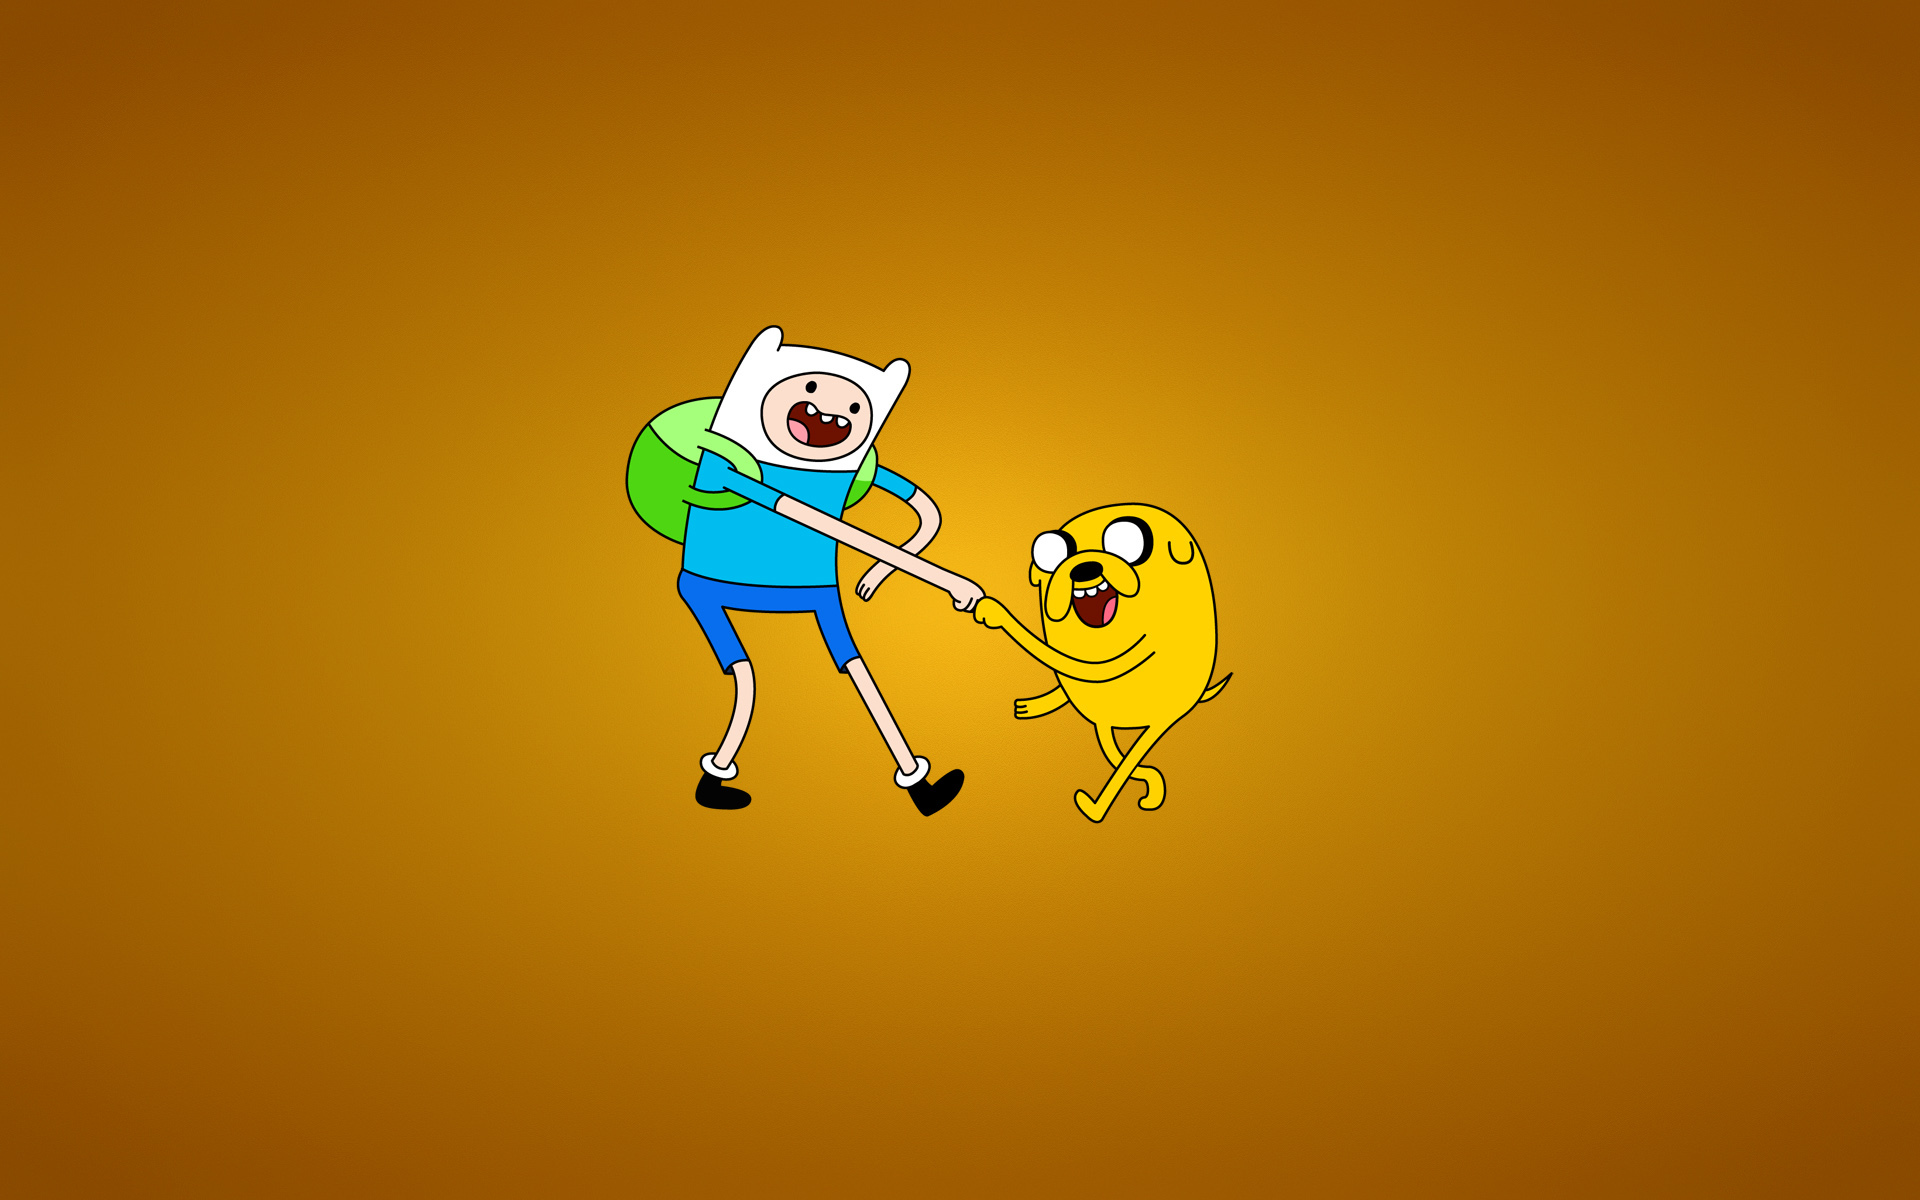 Wallpaper adventure time with finn and jake wallpapers minimalism 1920x1200